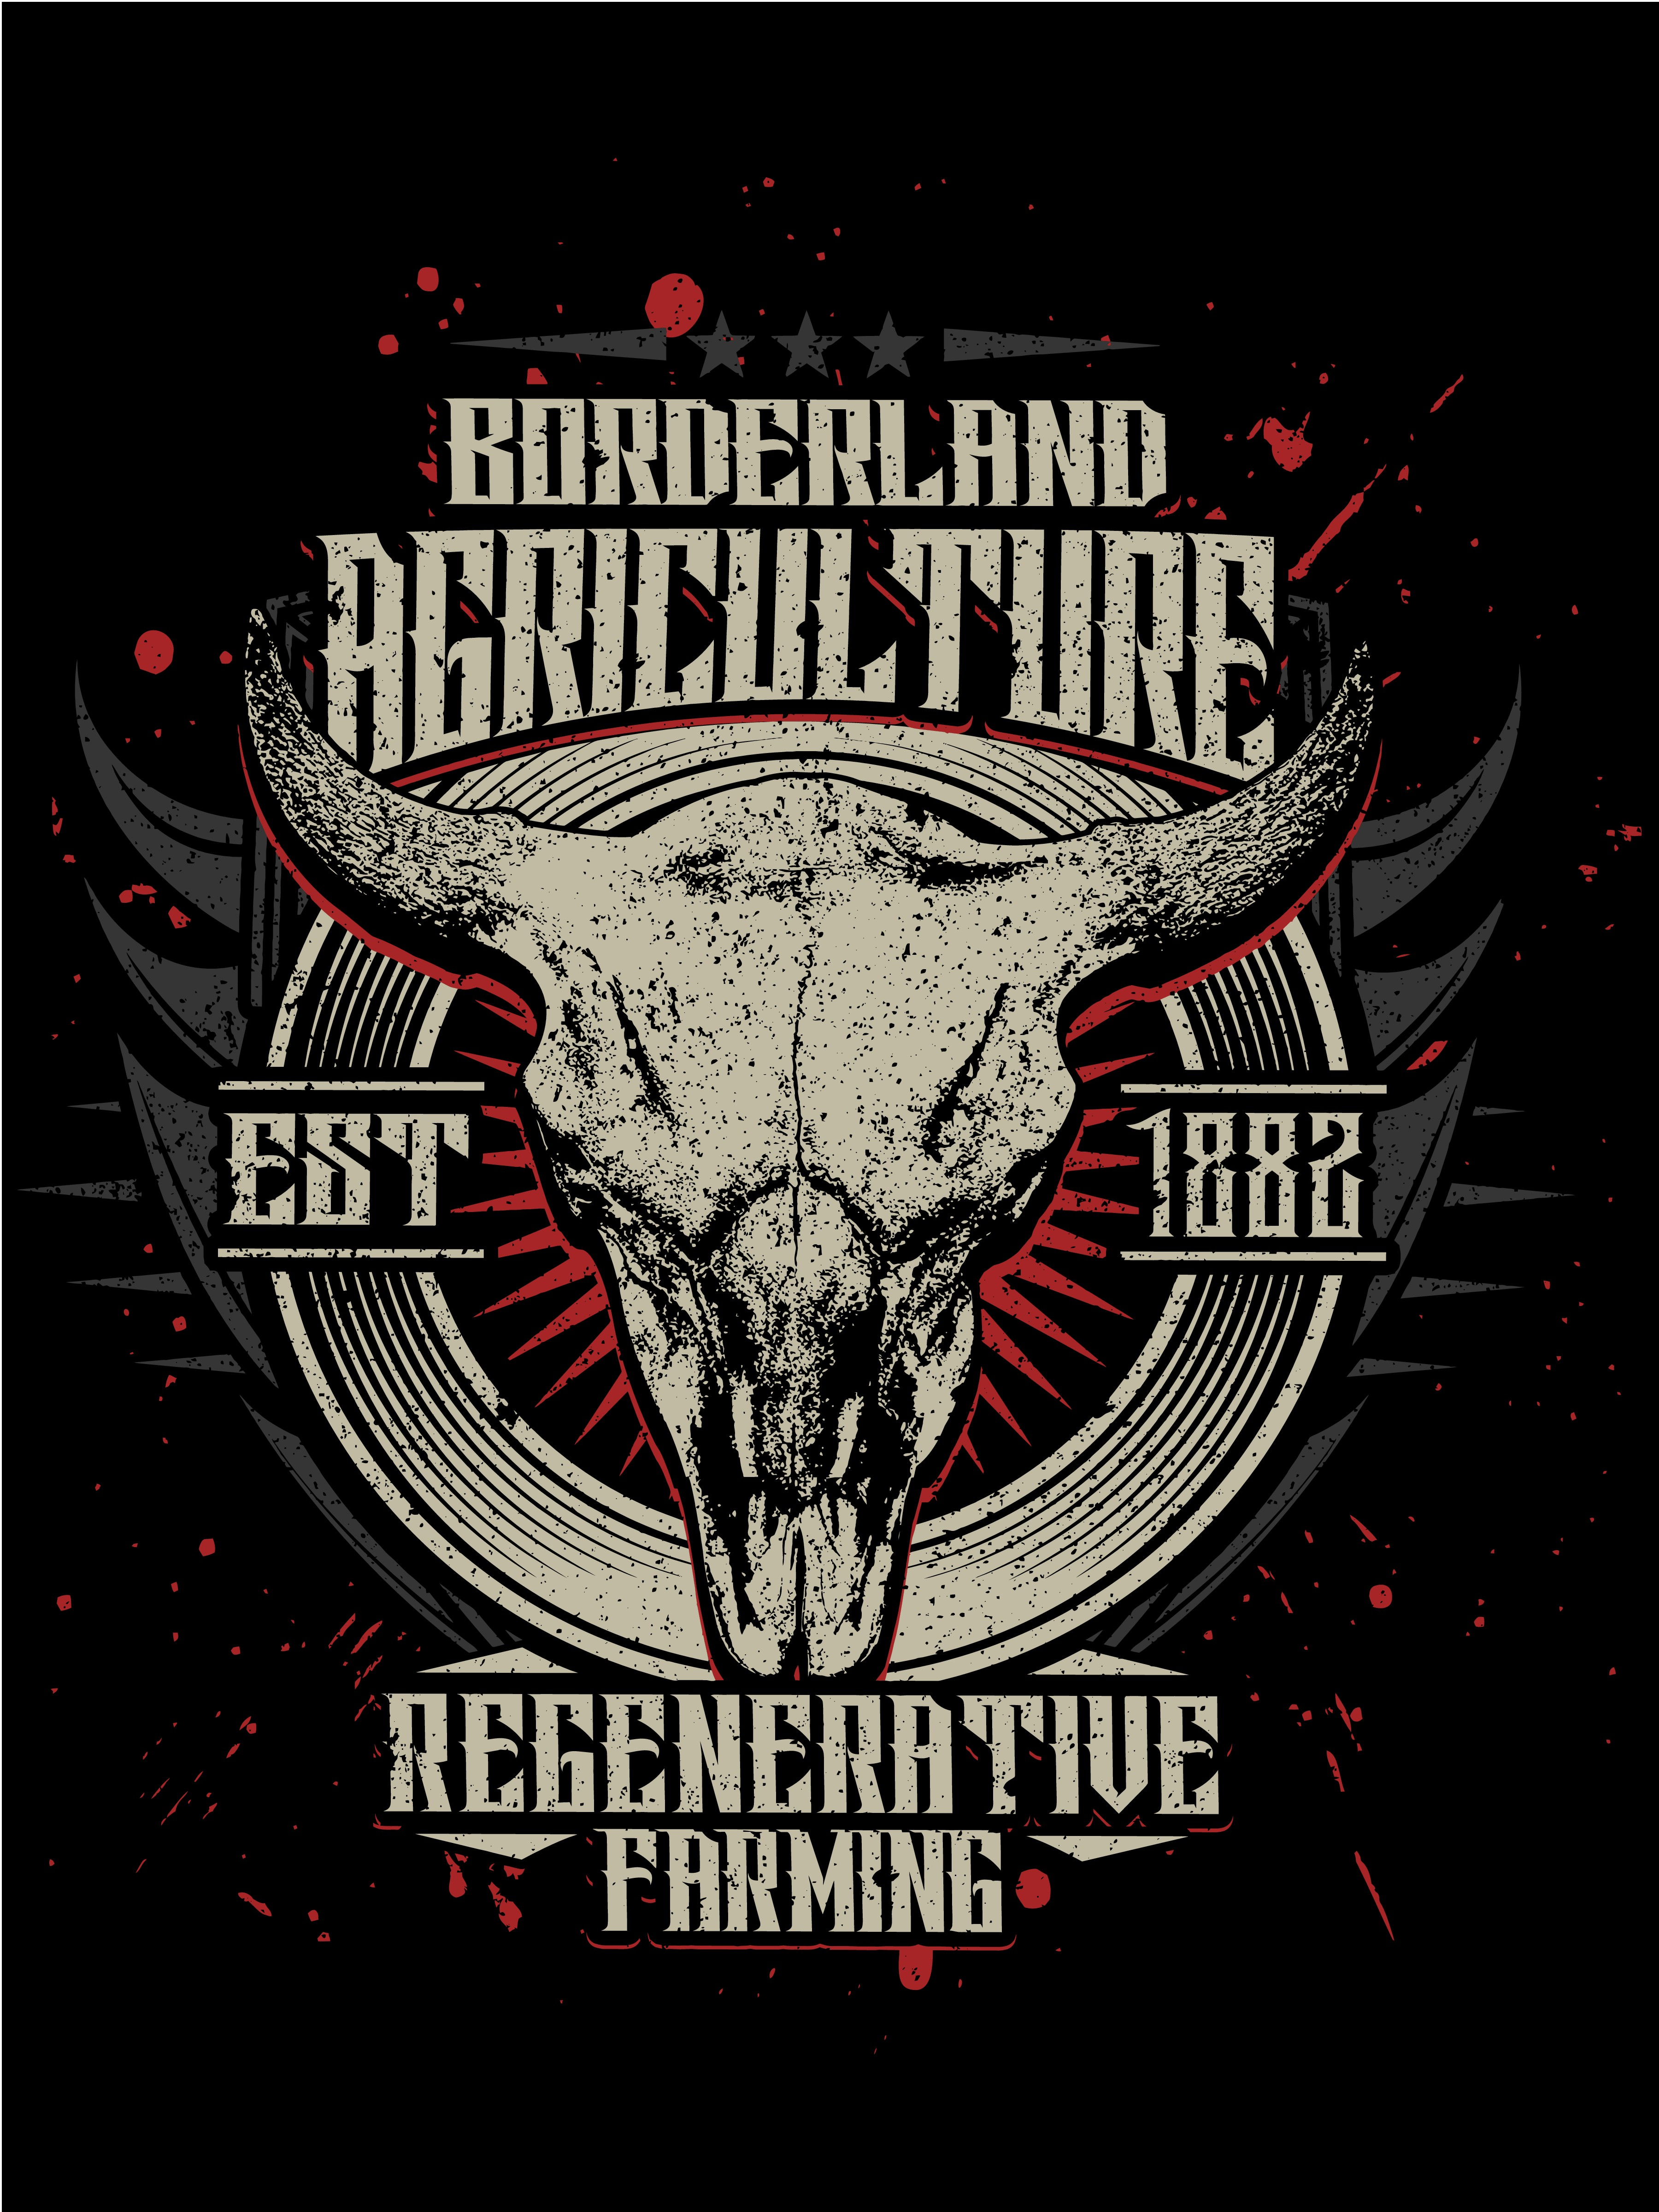 Create a vintage Affliction style tshirt for Borderland Agriculture bison farm and ranch!